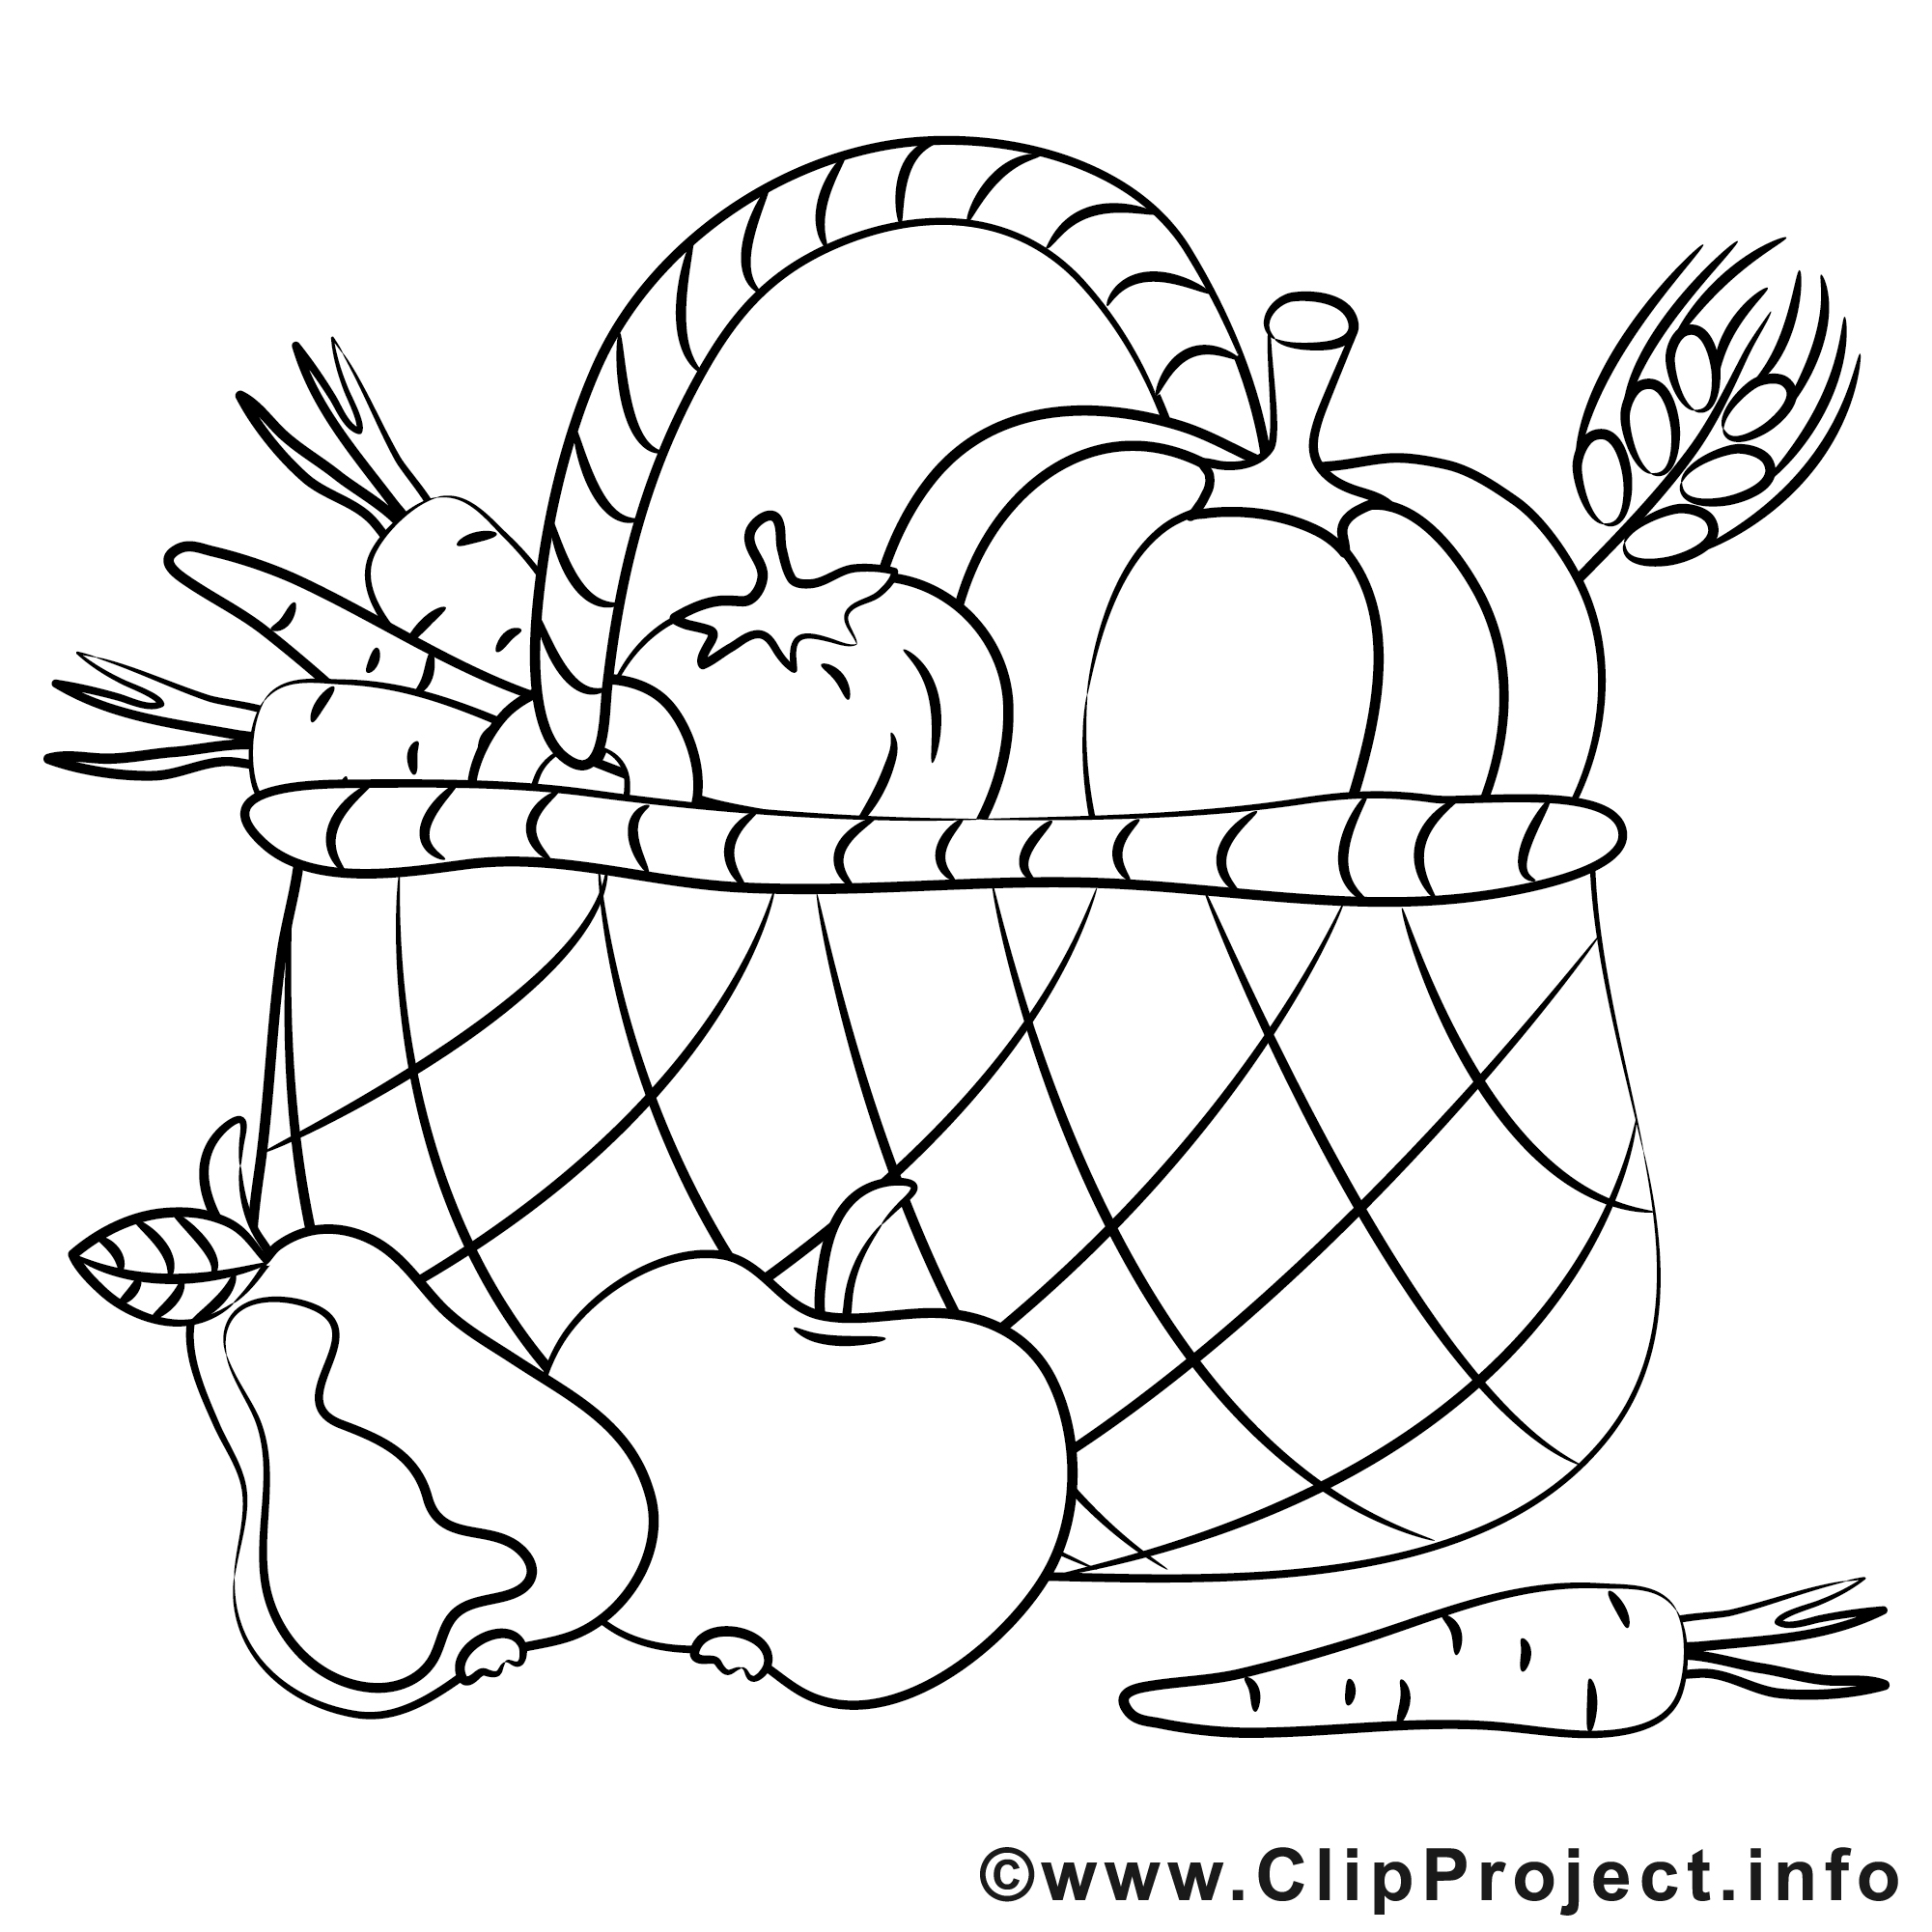 Obst und gemse clipart image royalty free Obst clipart schwarz weiß - ClipartFox image royalty free